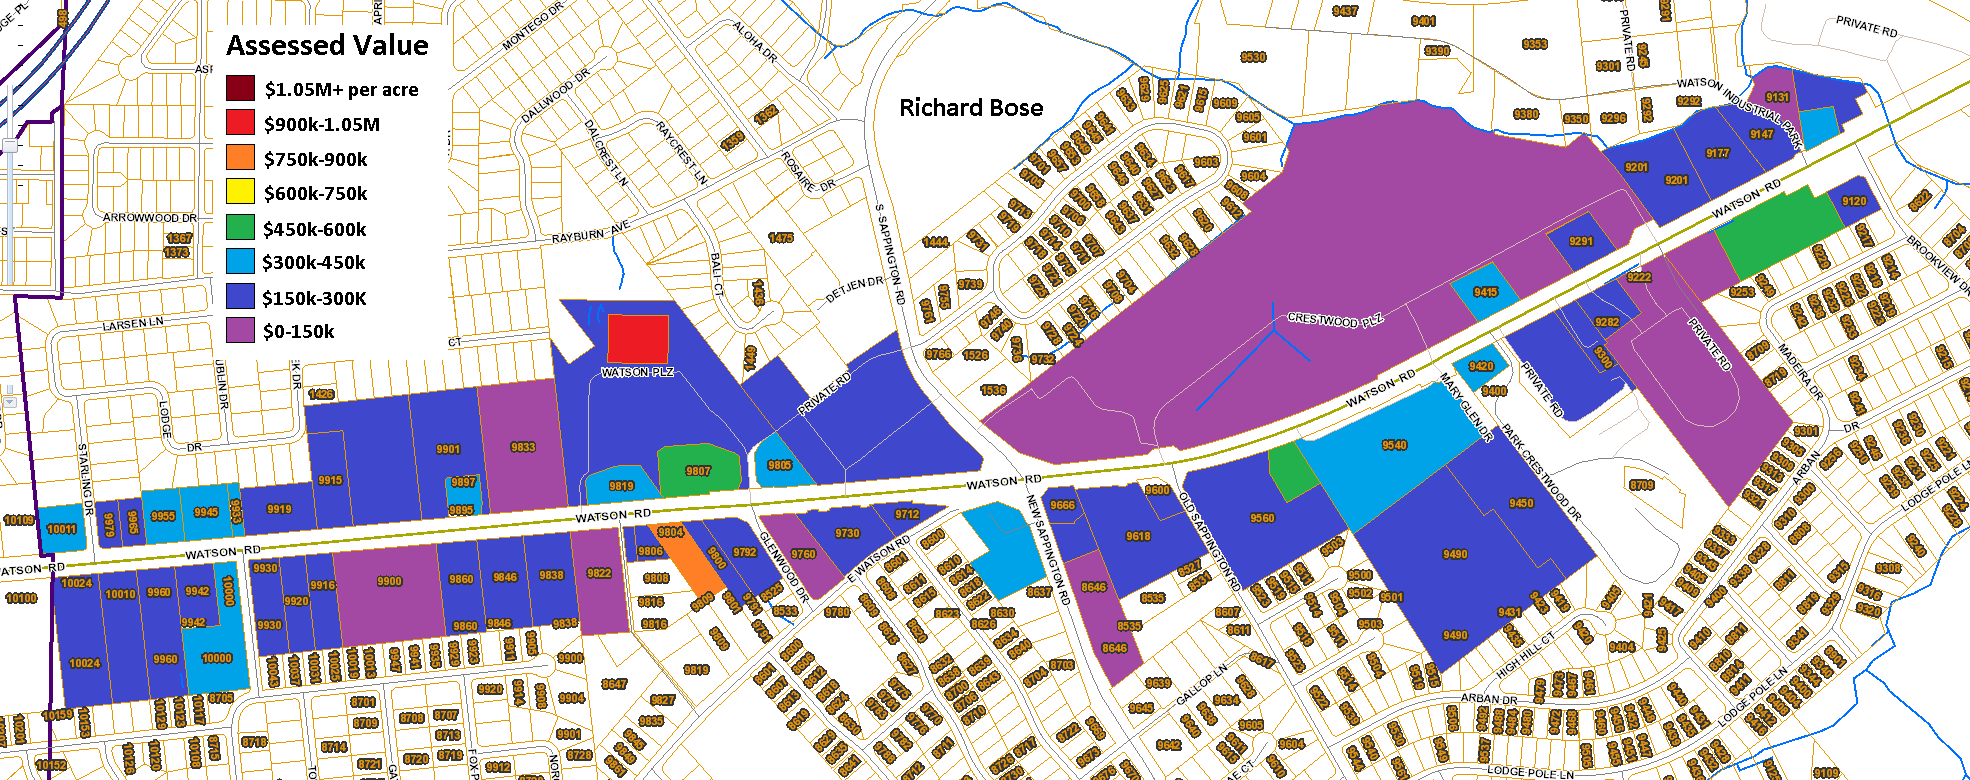 Crestwood Parcels with Colors and Scale